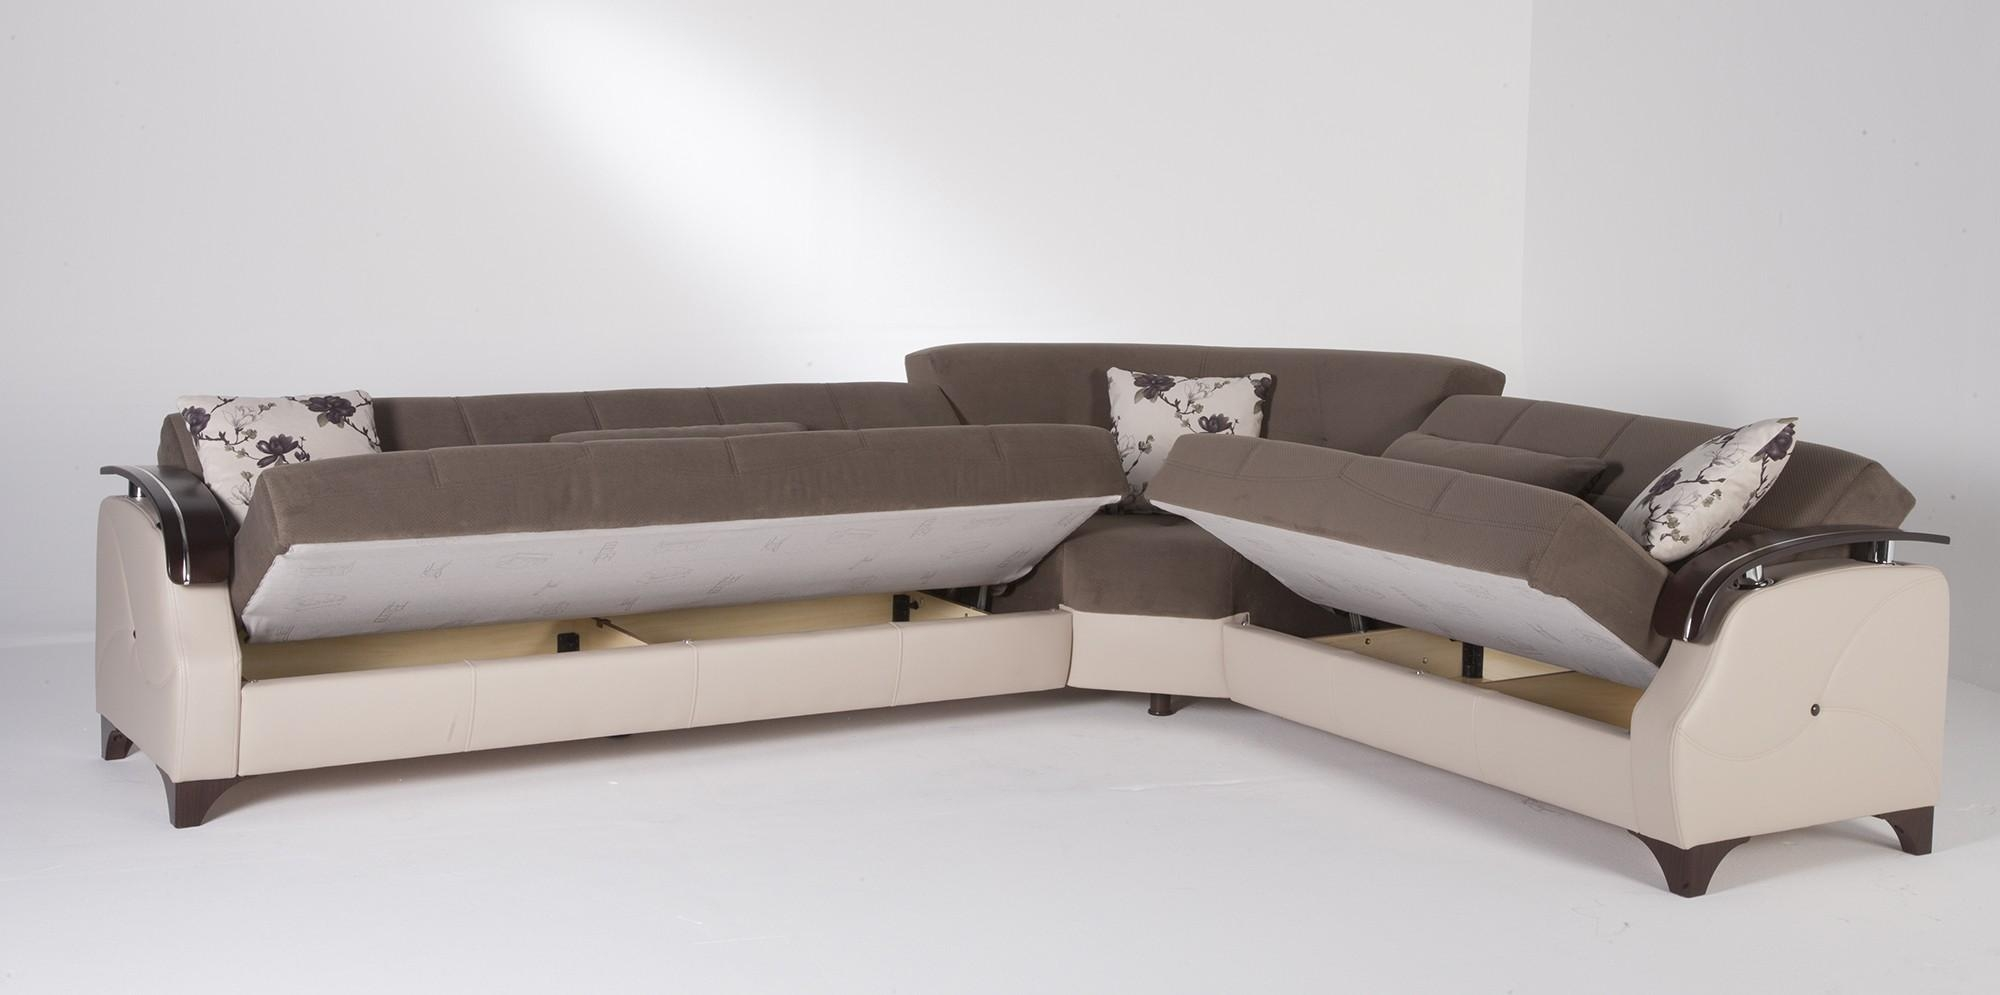 Sofas : Marvelous Chaise Sofa Small Sectional Sofa Couch Bed Within Queen Size Sofa Bed Sheets (Image 21 of 21)